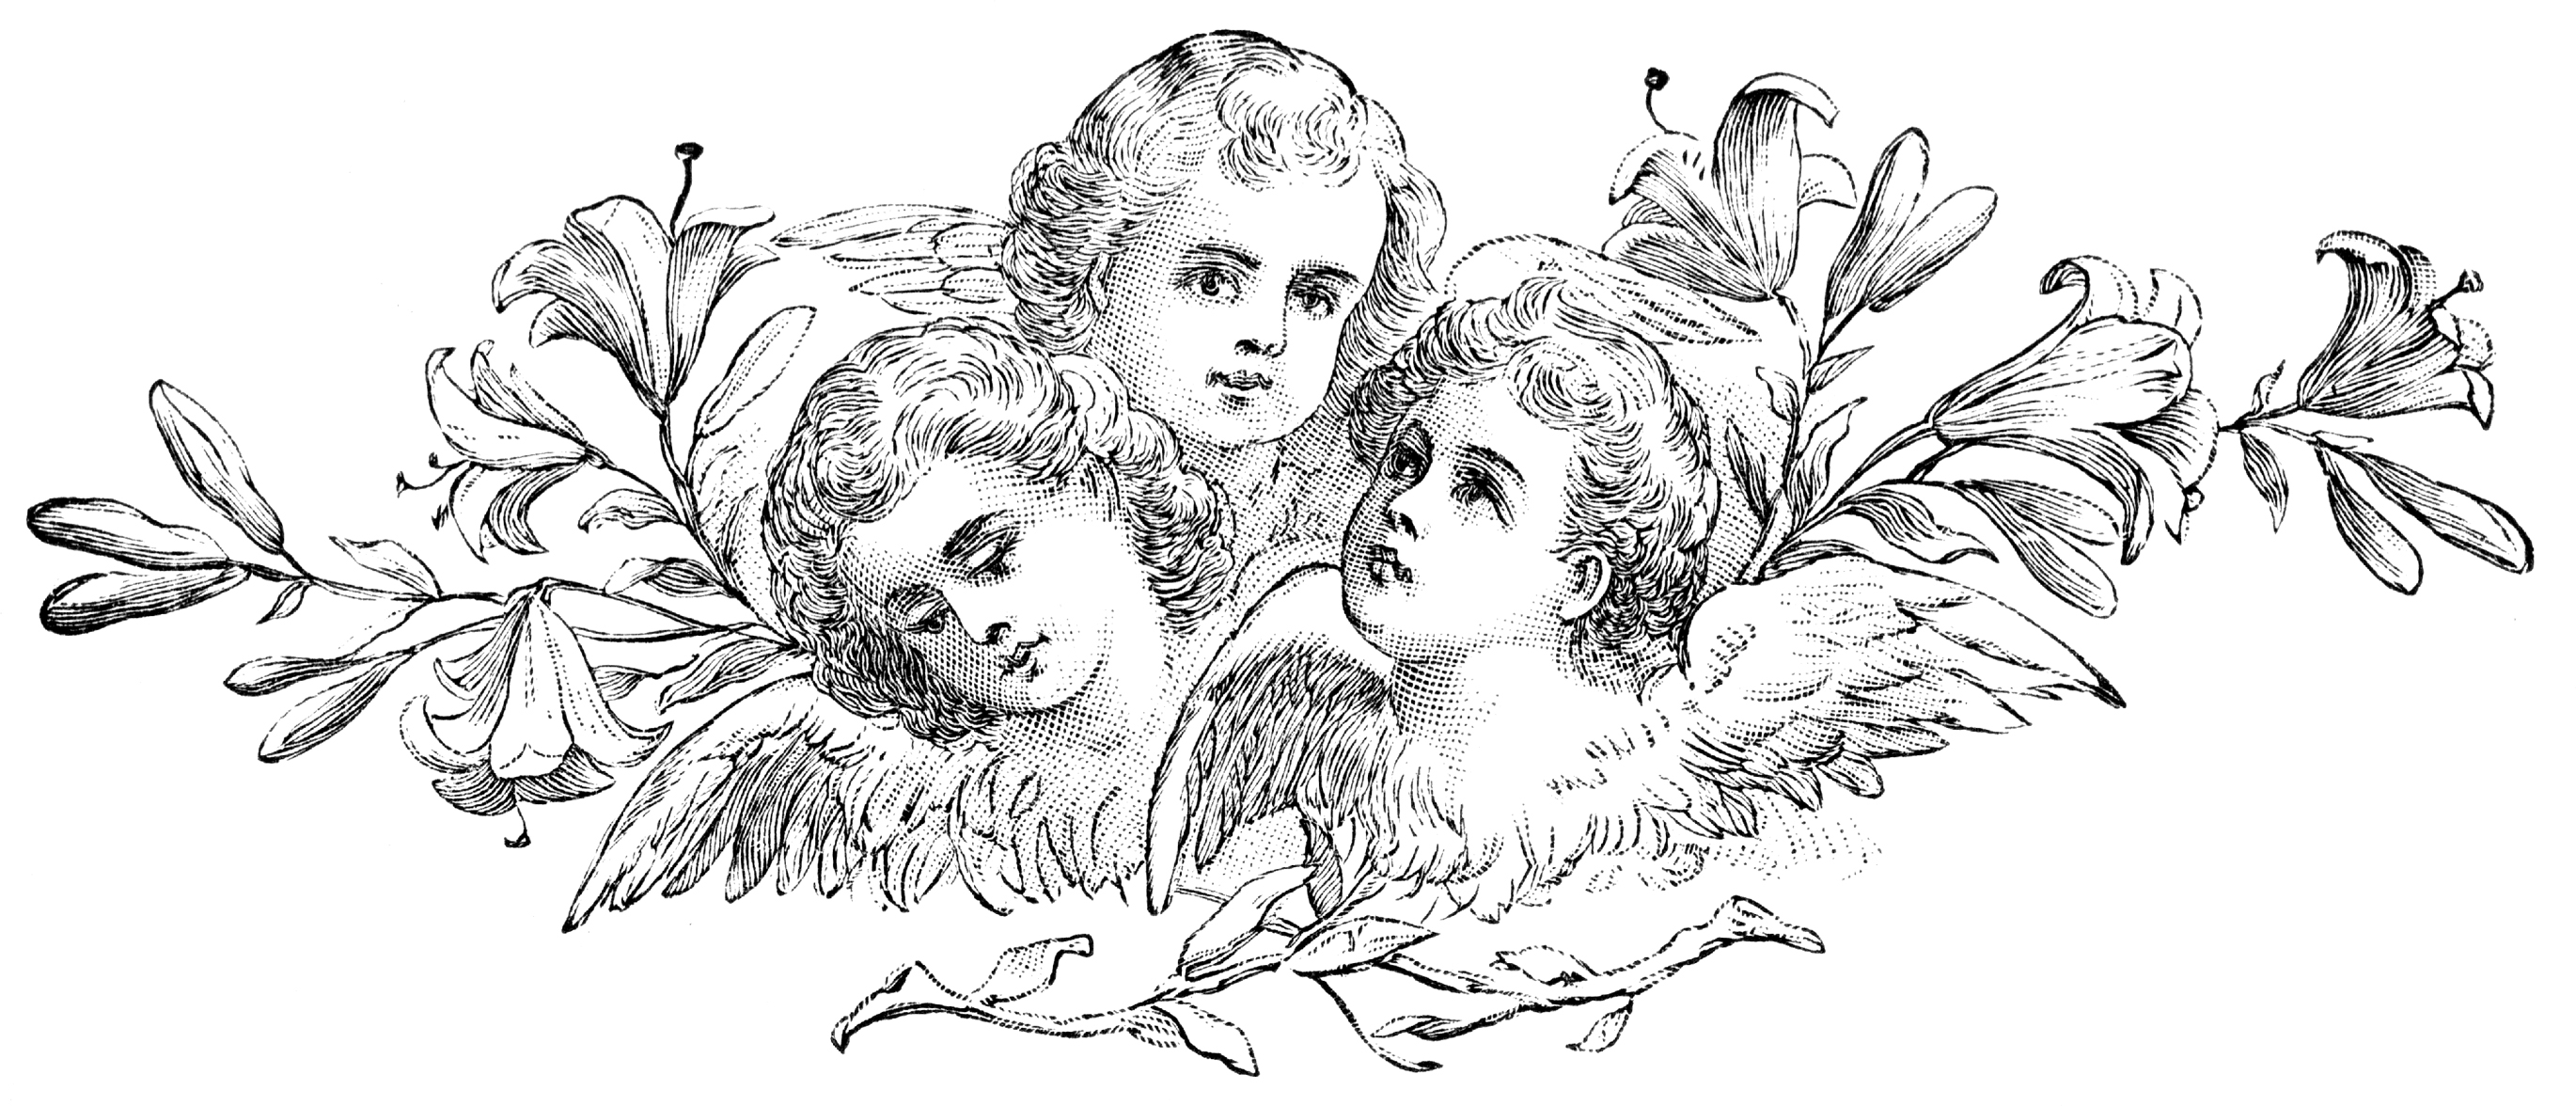 Sad and Sweet Gothic Cherubs Clip Art Decorative Element.